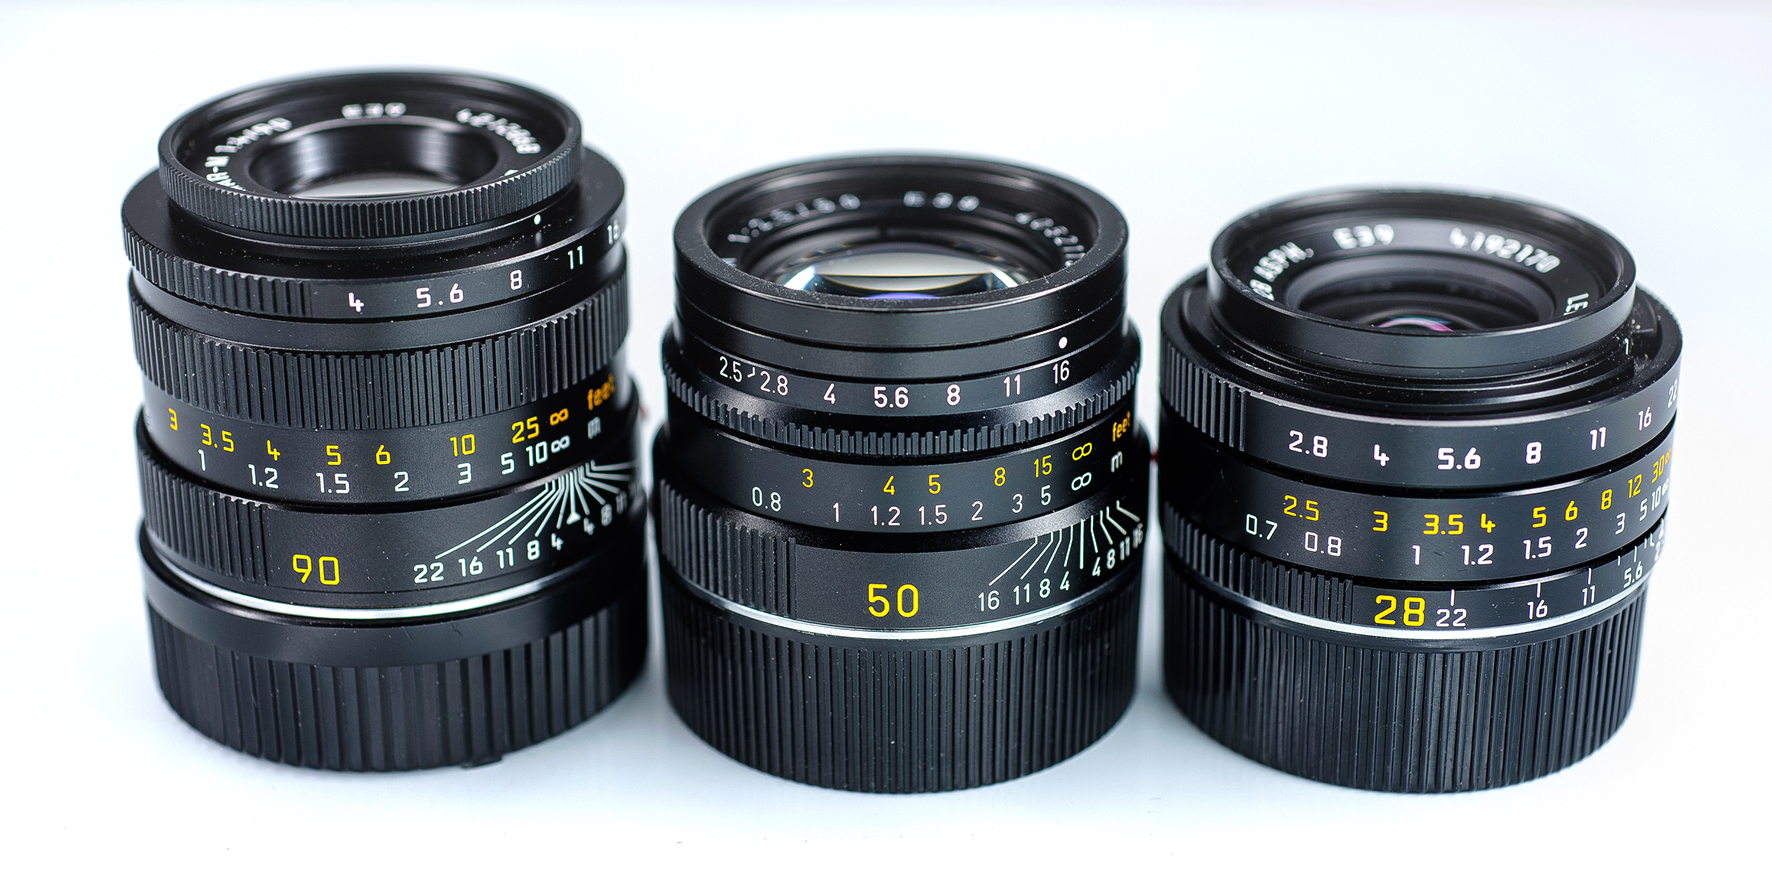 Leica lens trio 90mm macroelmar 50mm summarit 28mm elmarit lenses review